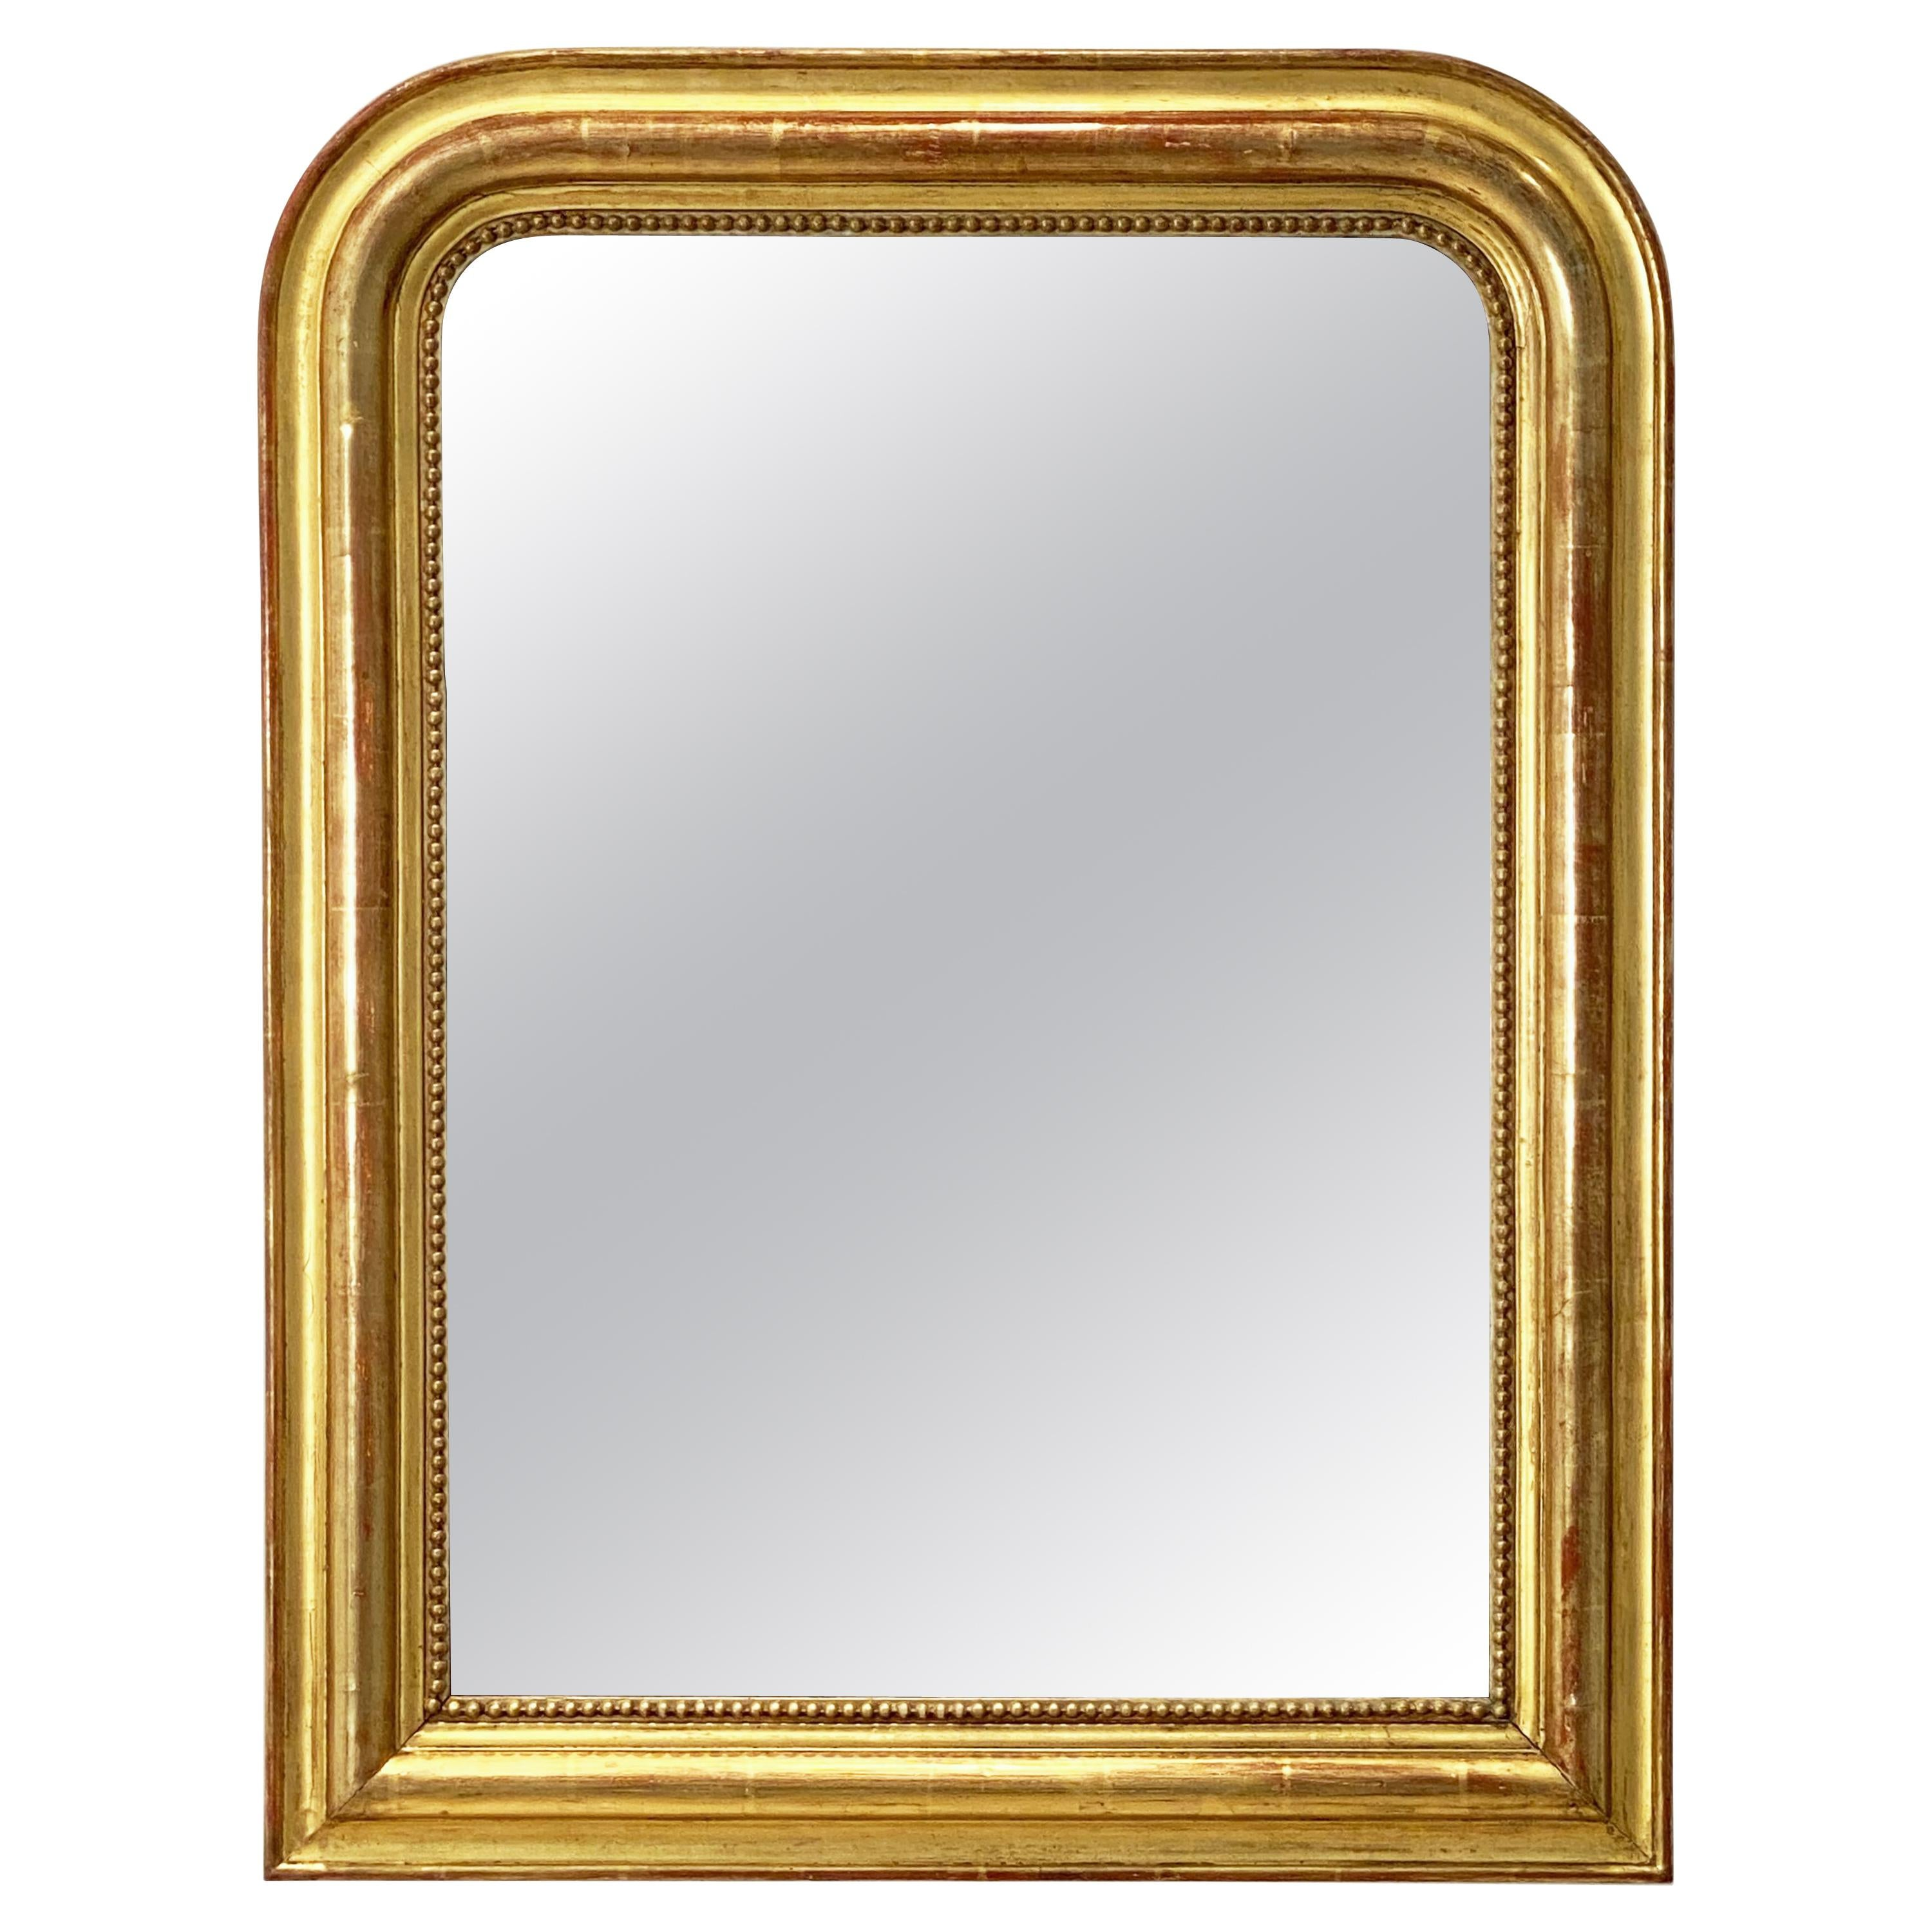 Large Louis Philippe Arch Top Gilt Mirror From France (H 30 7/8 X W 23 3/4)